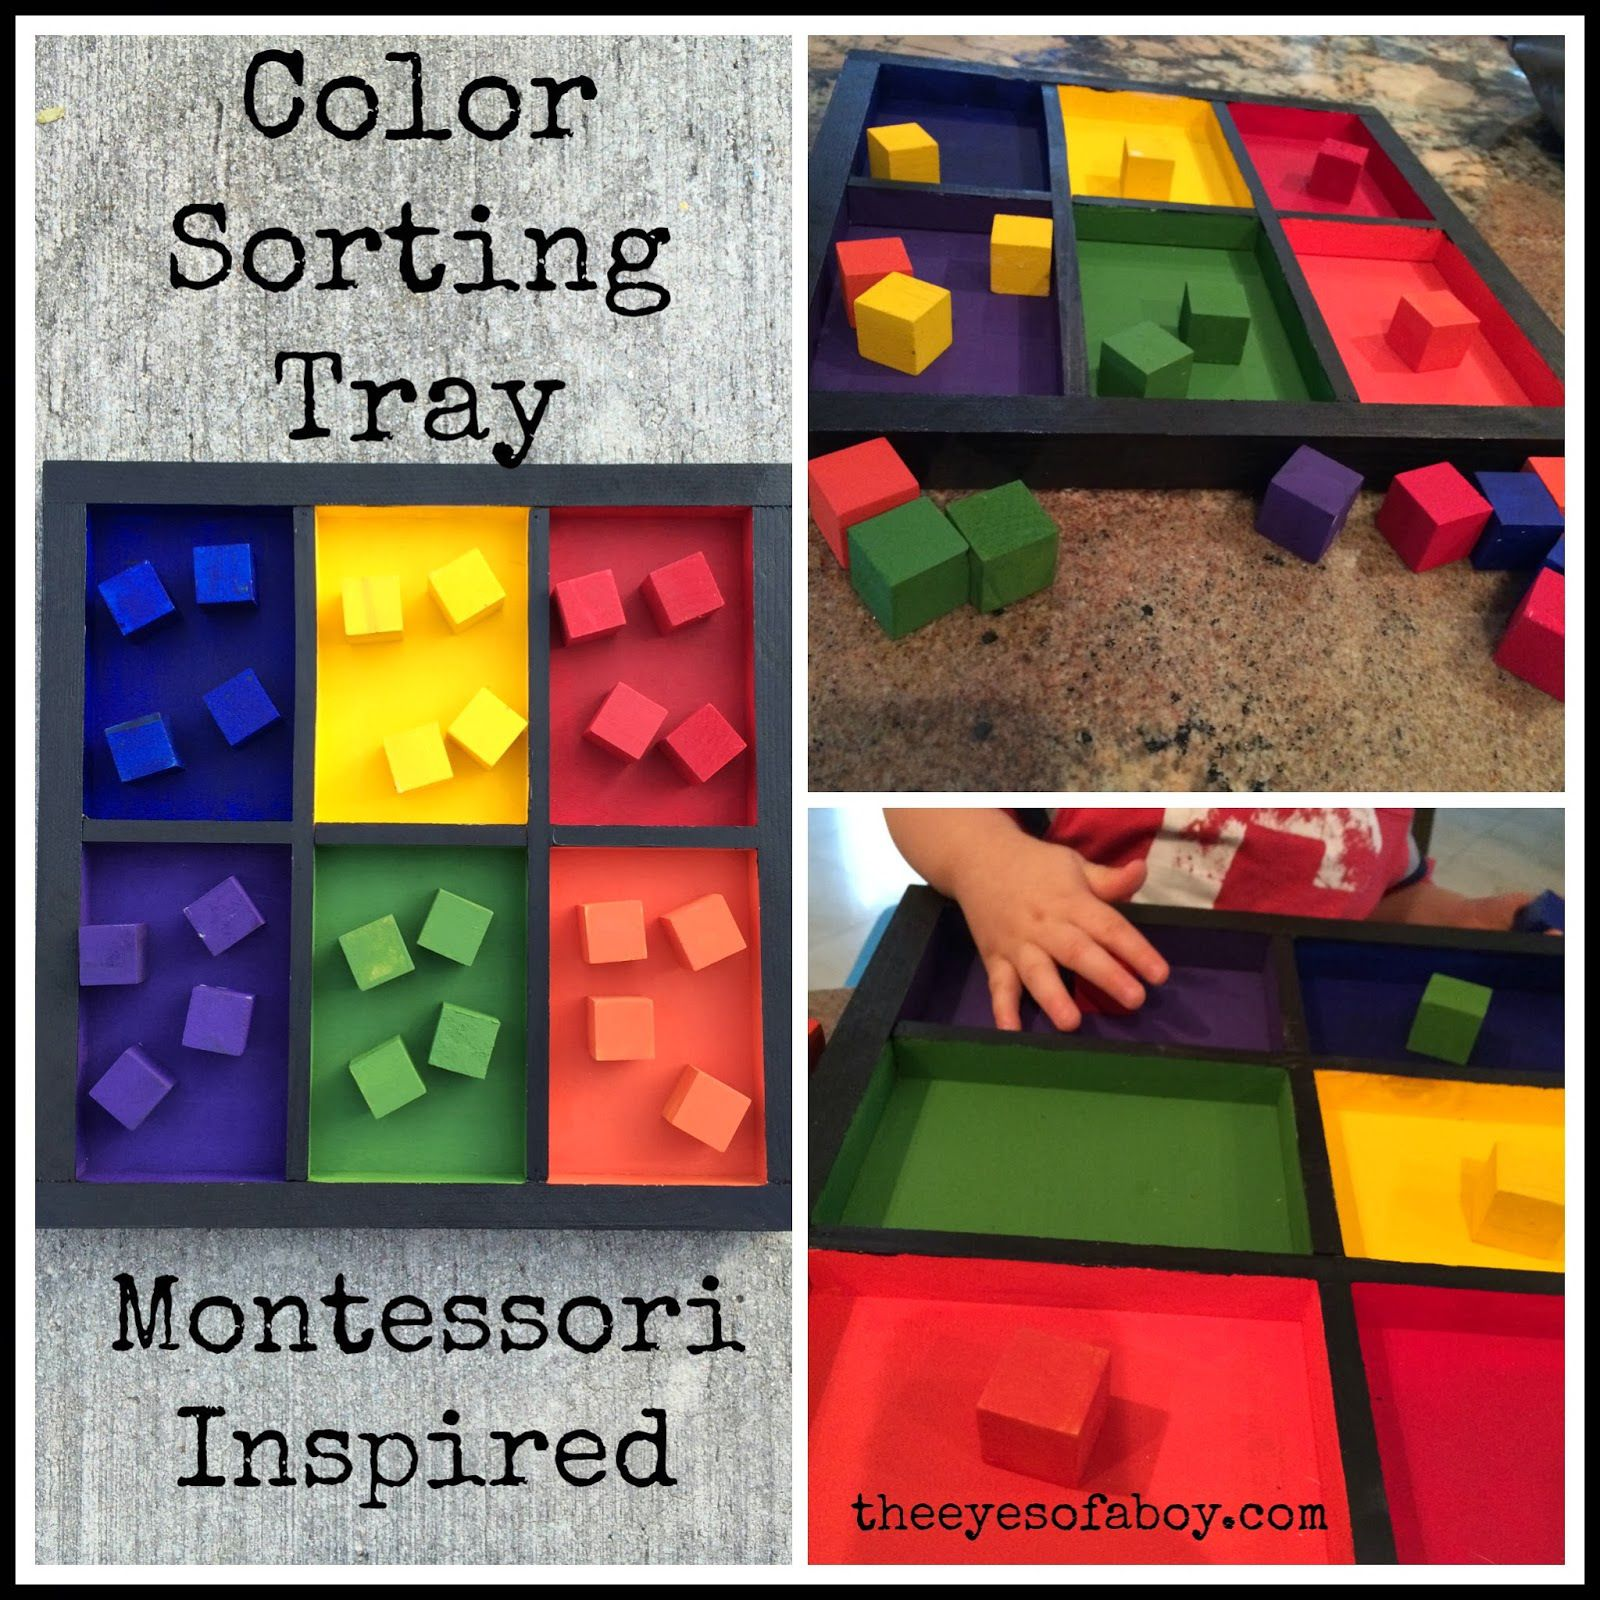 Montessori Inspired Wooden Color Sorting Tray Diy Learning Activity For Toddlers And